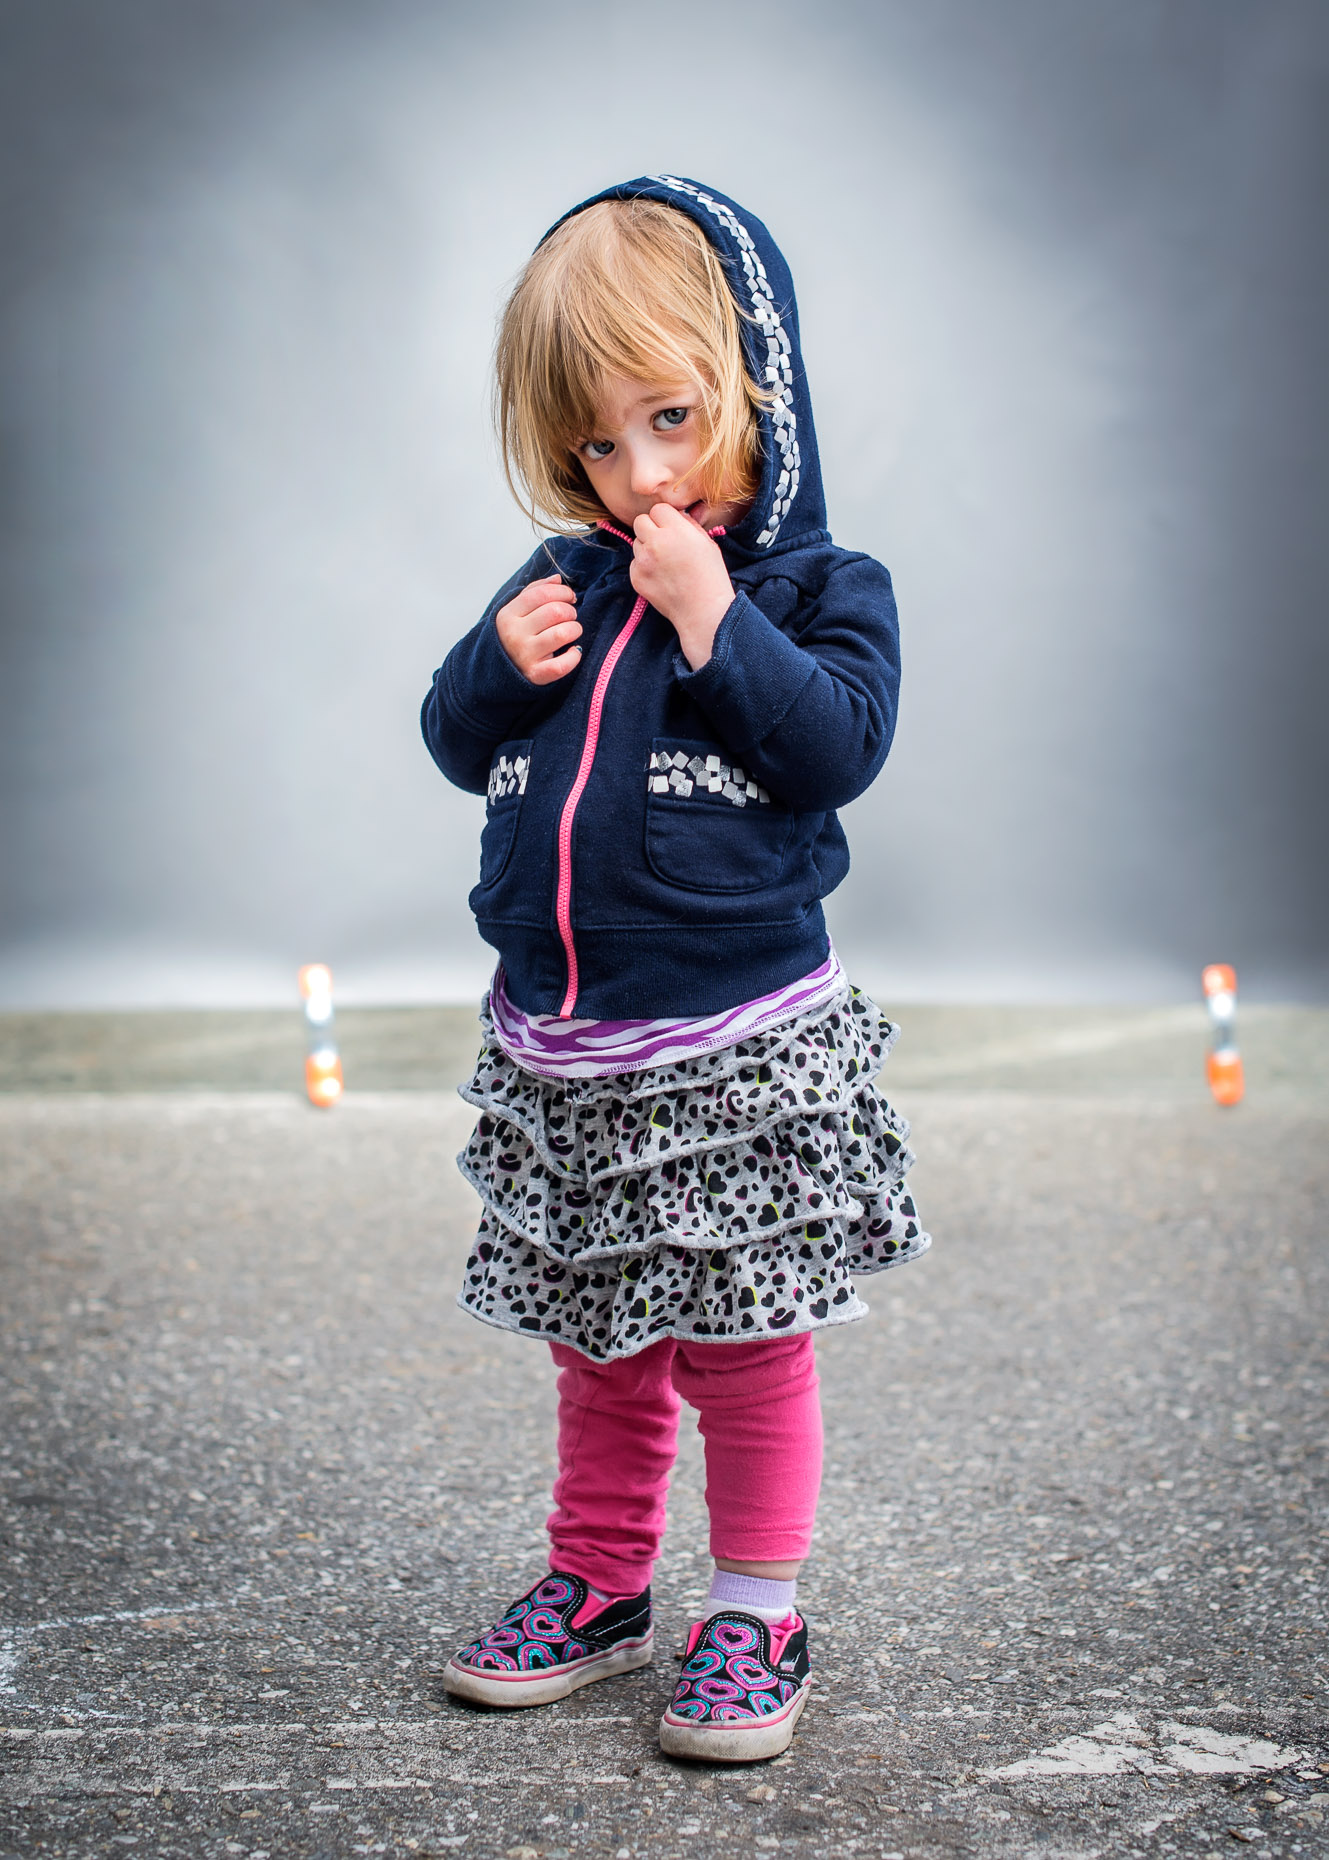 Shy little girl in blue hoodie and ruffled skirt in front of grey background